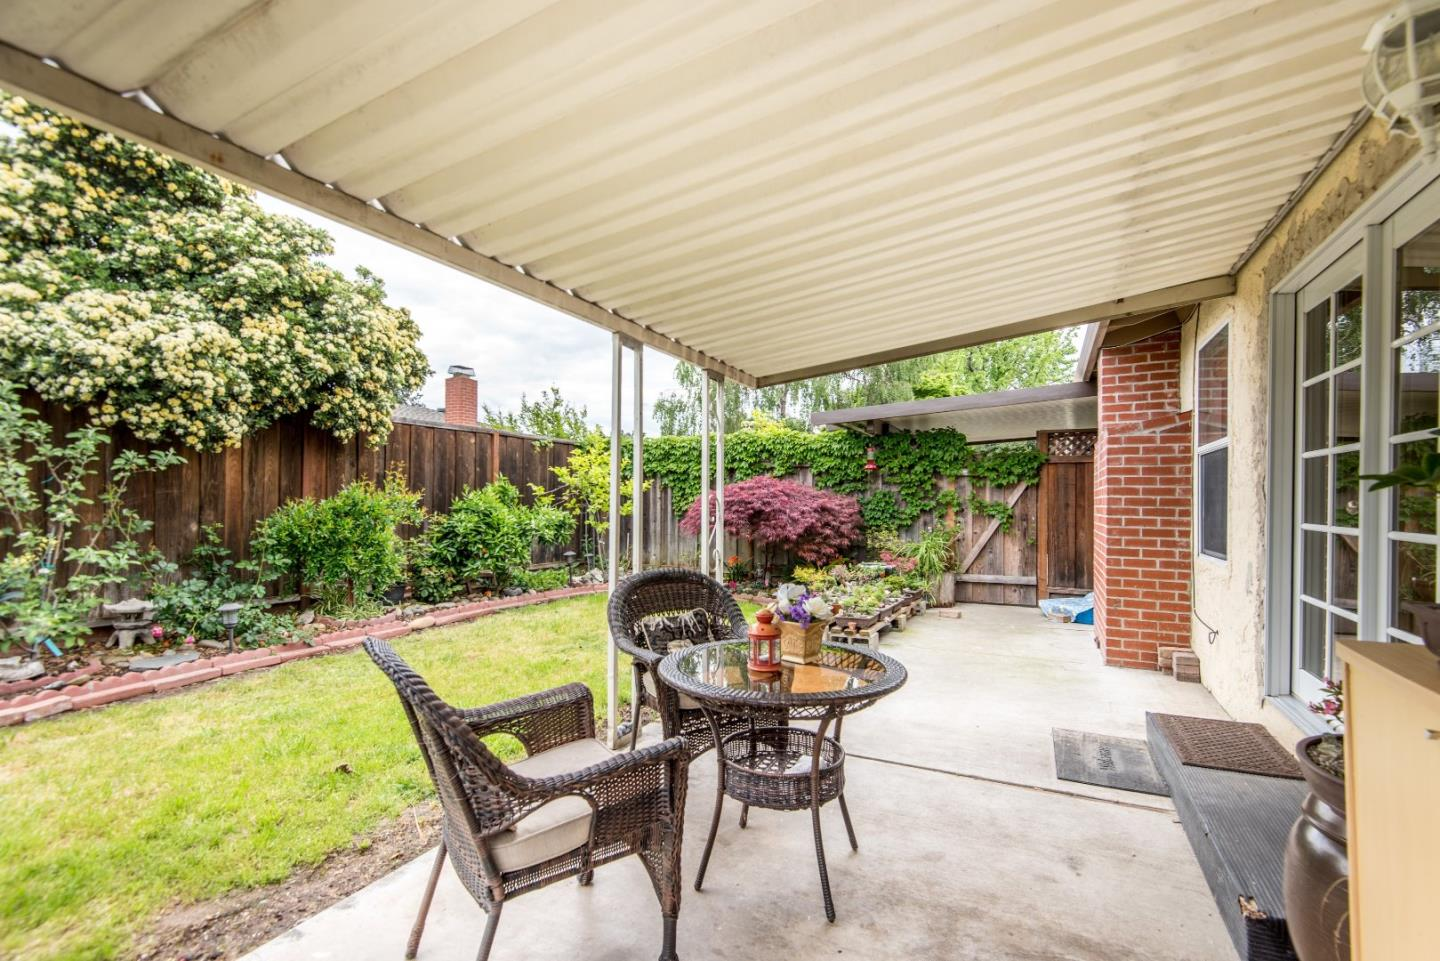 Additional photo for property listing at 1462-1464 Jenvey Ave  SAN JOSE, CALIFORNIA 95125